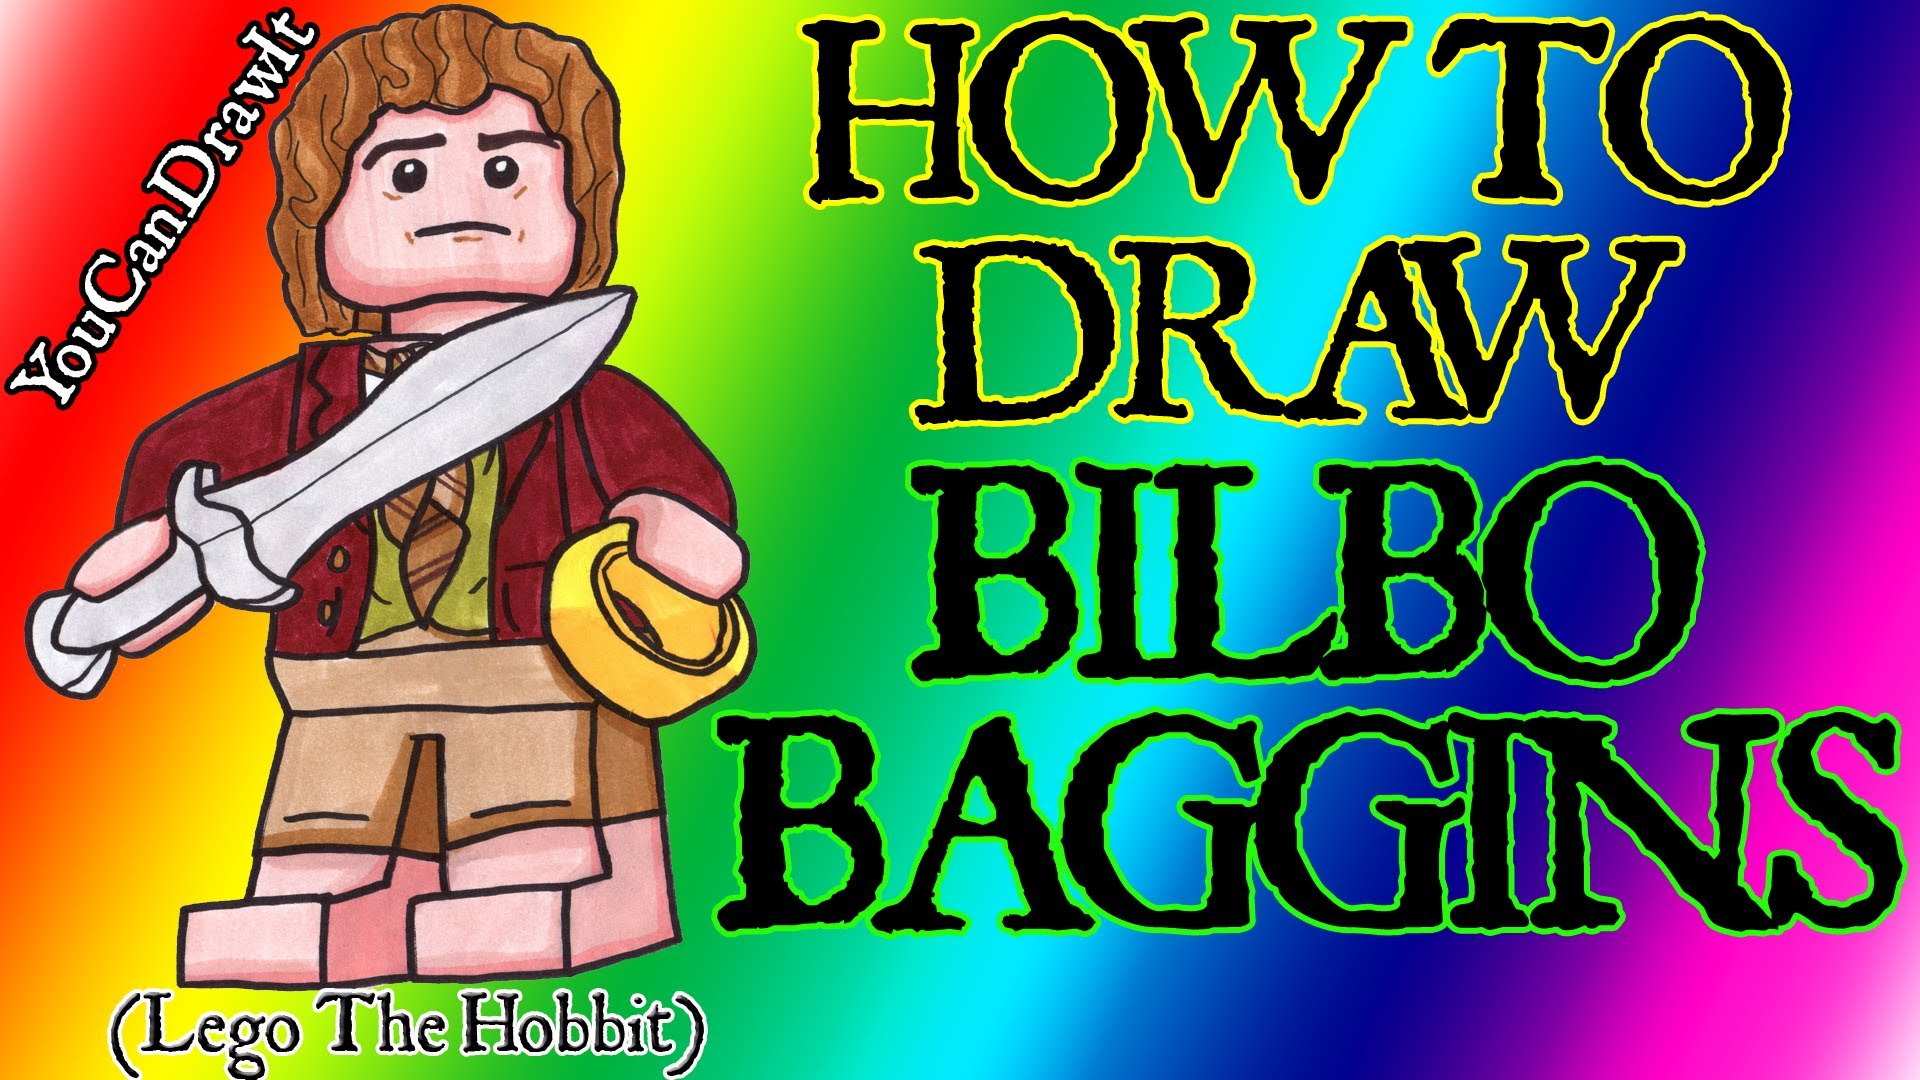 Bilbo Baggins clipart lego figure From ✎ Baggins  of